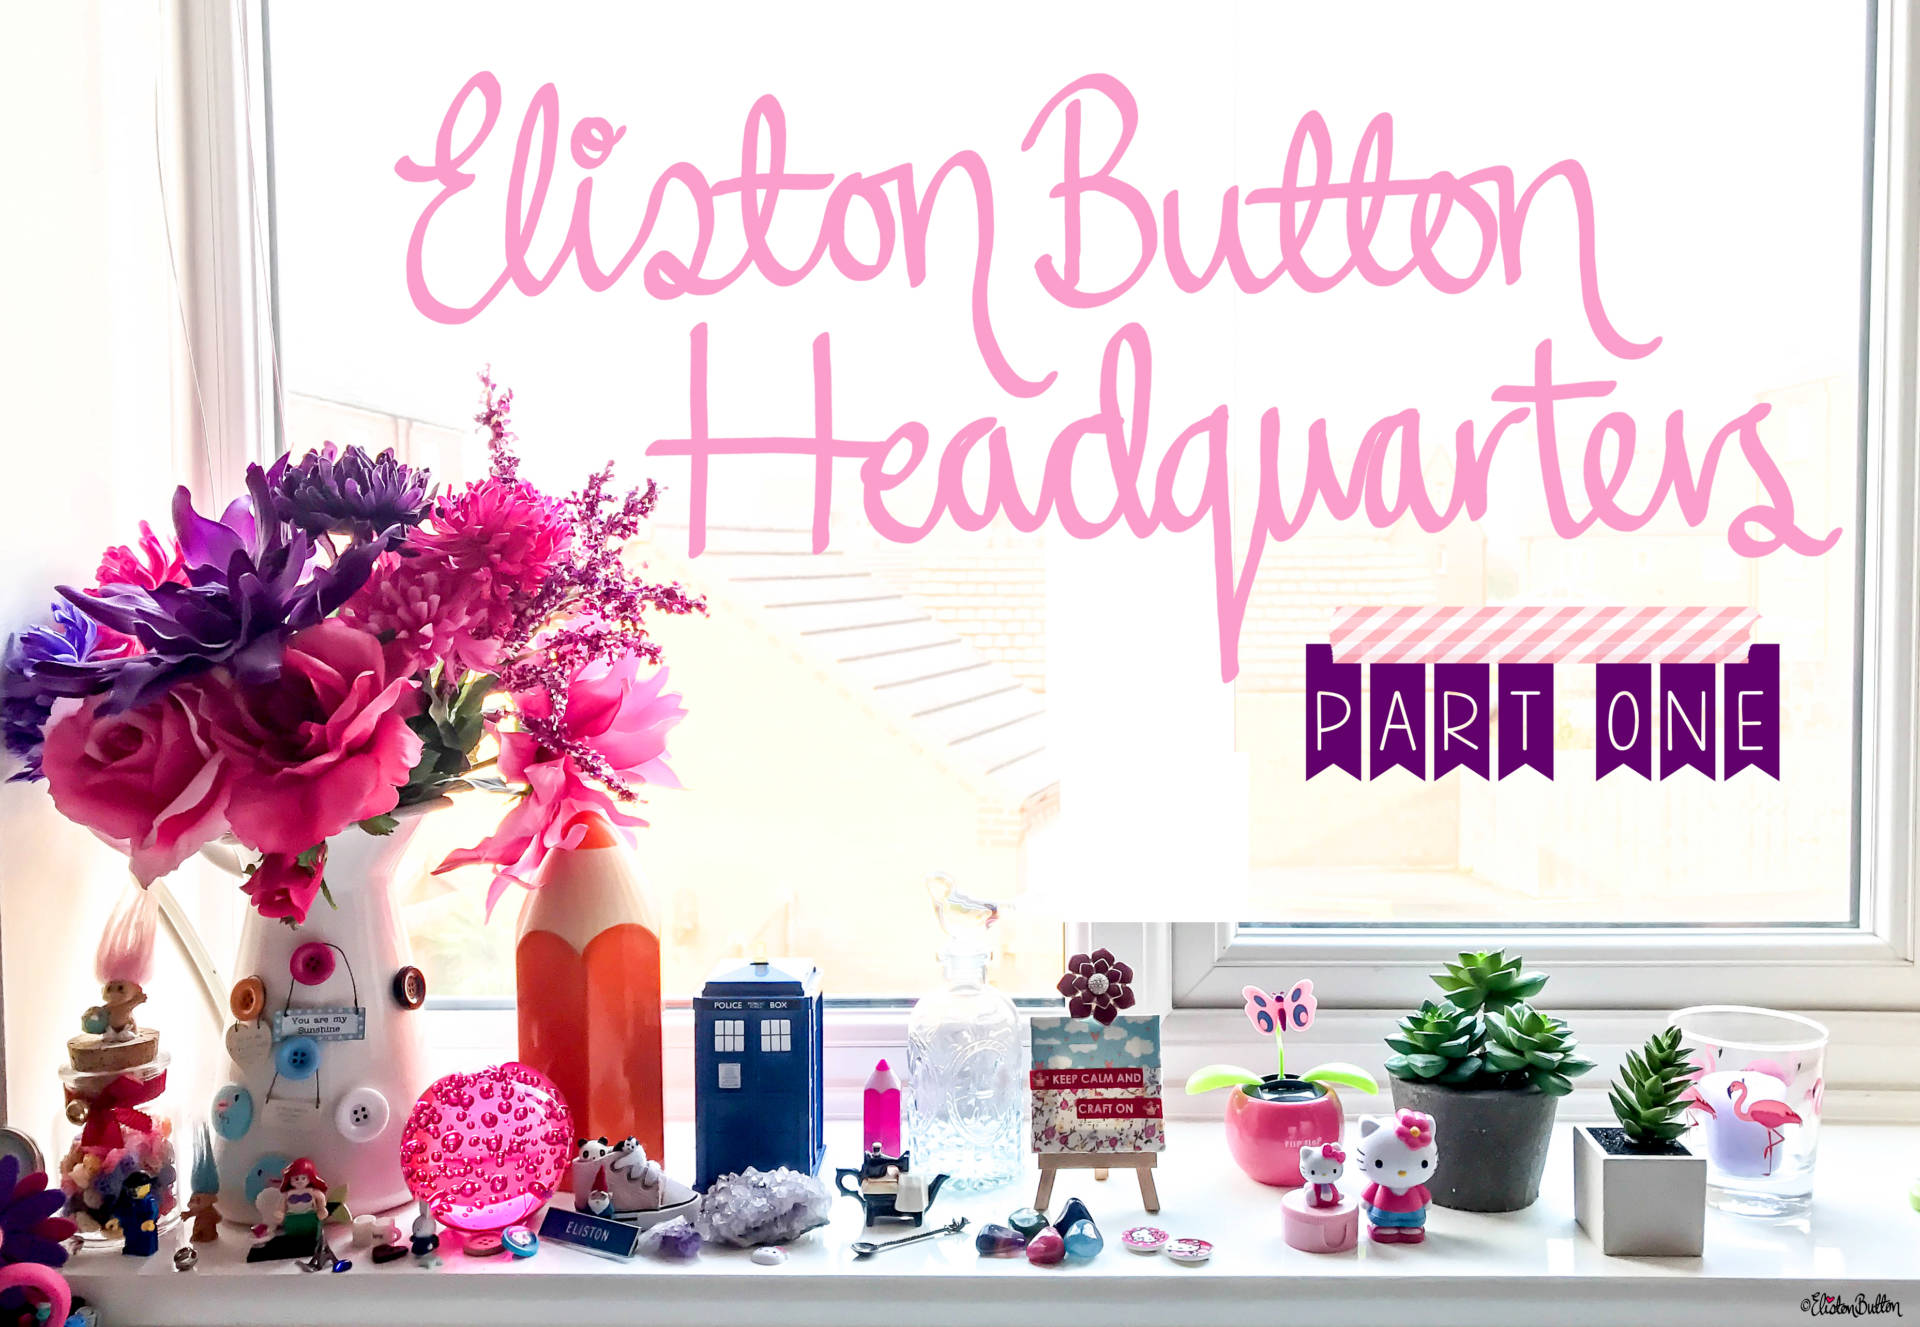 Eliston Button Headquarters - Part One - Eliston Button Headquarters – Part one at www.elistonbutton.com - Eliston Button - That Crafty Kid – Art, Design, Craft & Adventure.